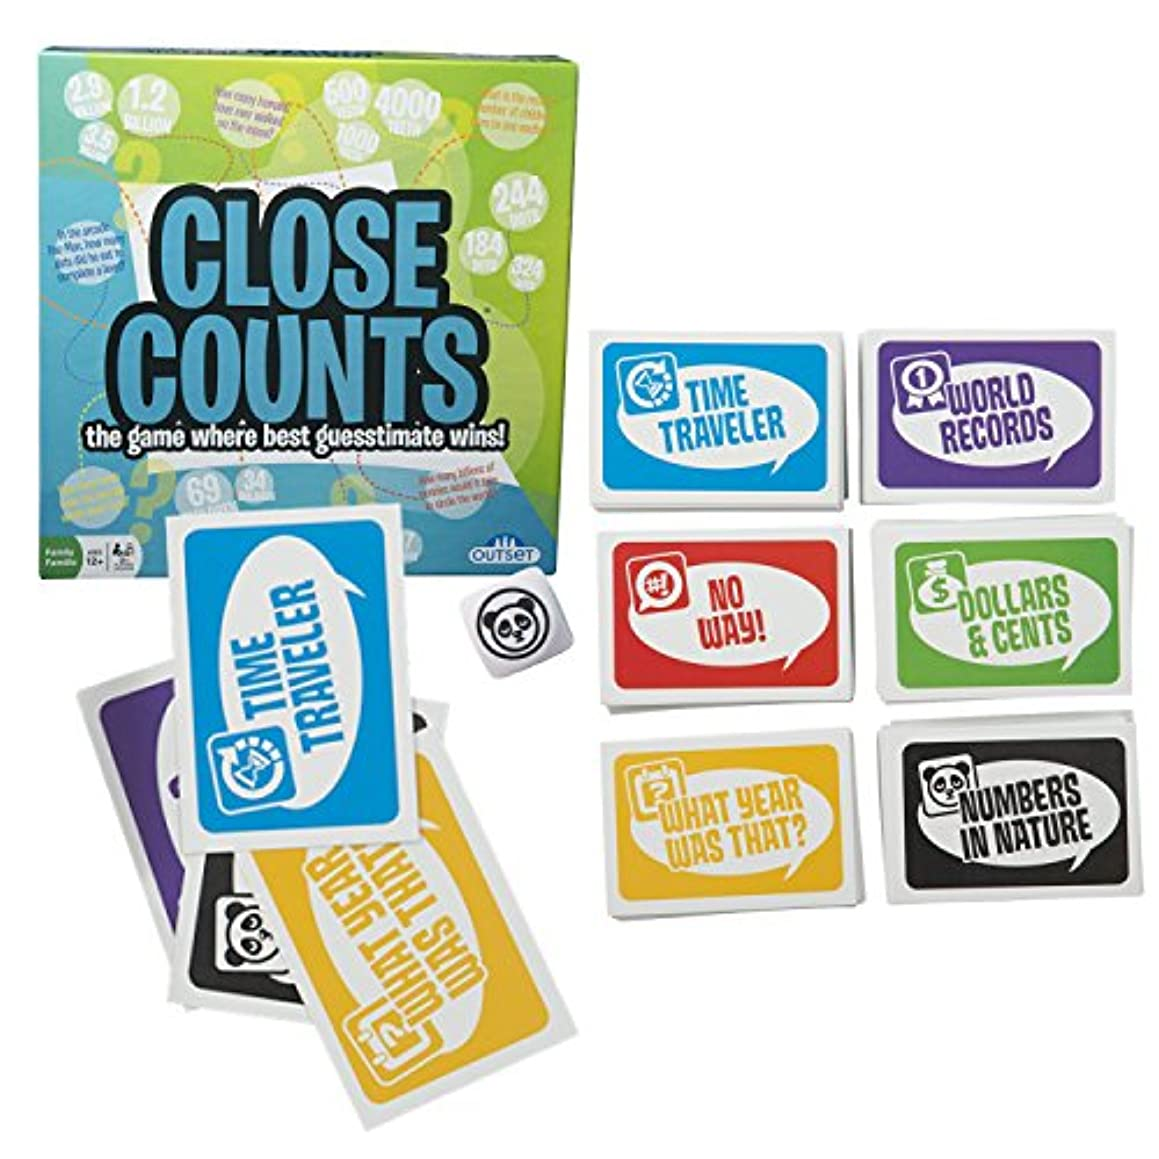 Close Counts Guessing Game - Features 6 Categories with 72 Cards for Each - You Don't Have to be Right, Just Closer than Everyone Else - Ages 12+